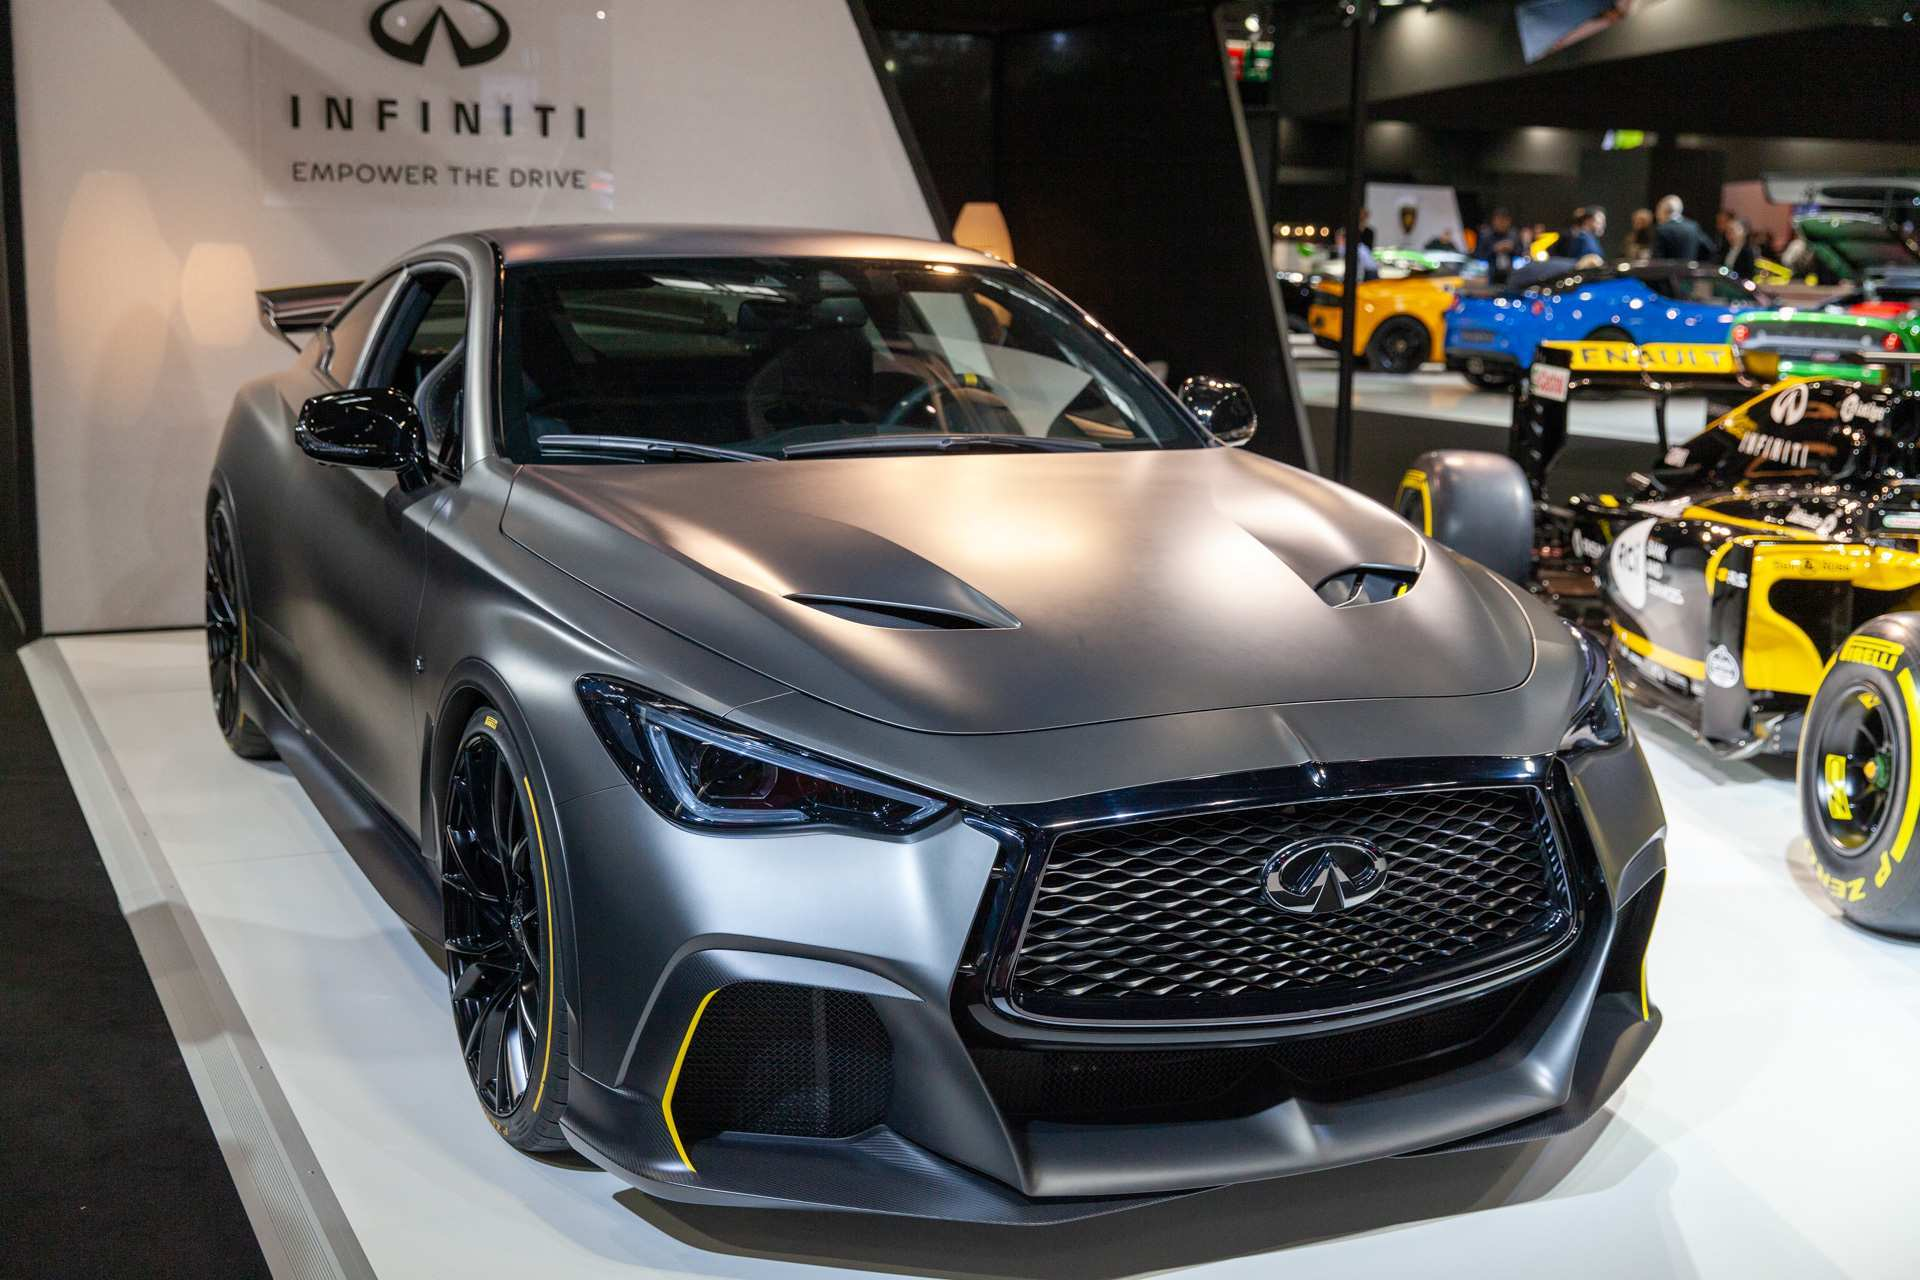 23 Concept of Infiniti Q60 2020 Wallpaper for Infiniti Q60 2020